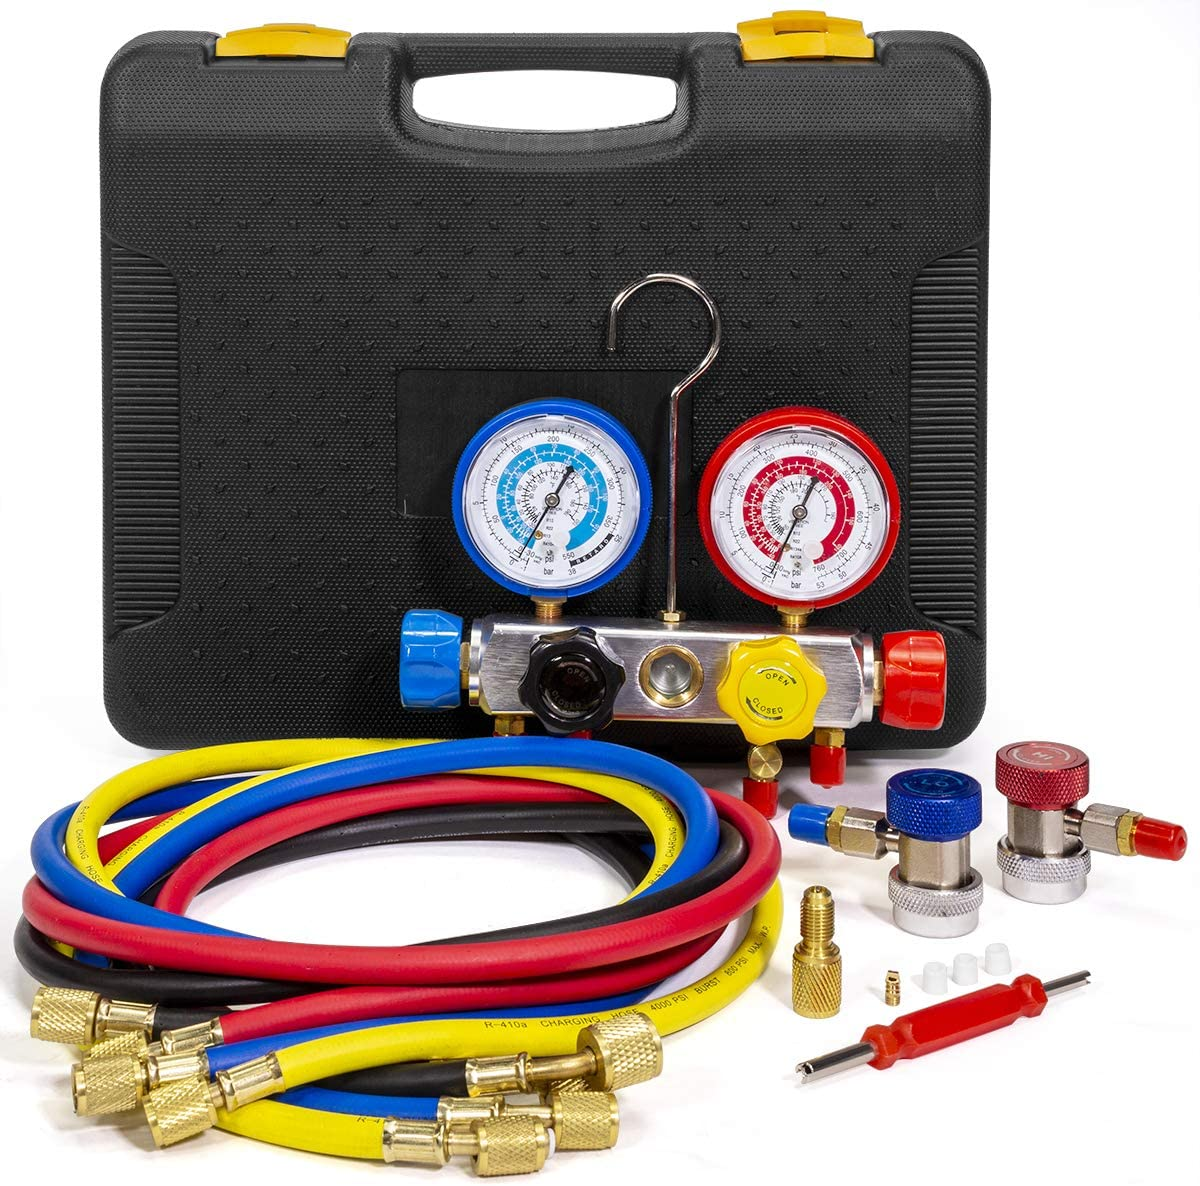 XtremepowerUS 4 Way AC Manifold Gauge Set R410A R22 R134A HVAC Diagnostic Charging Tool Quick Adapter w/Hose Set + Carrying Case